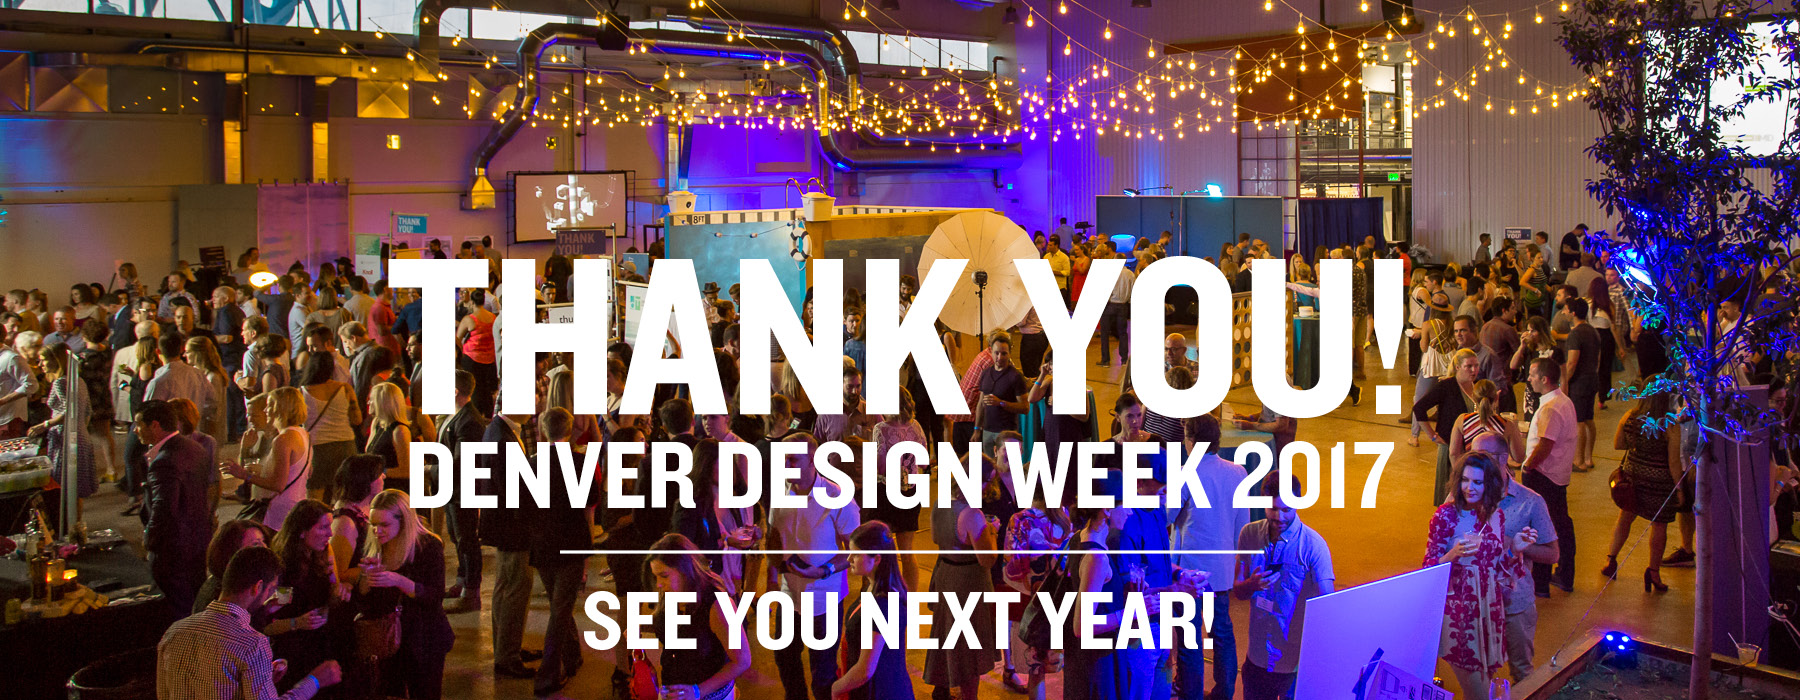 Denver design week july 15 21 2017 for Design week 2017